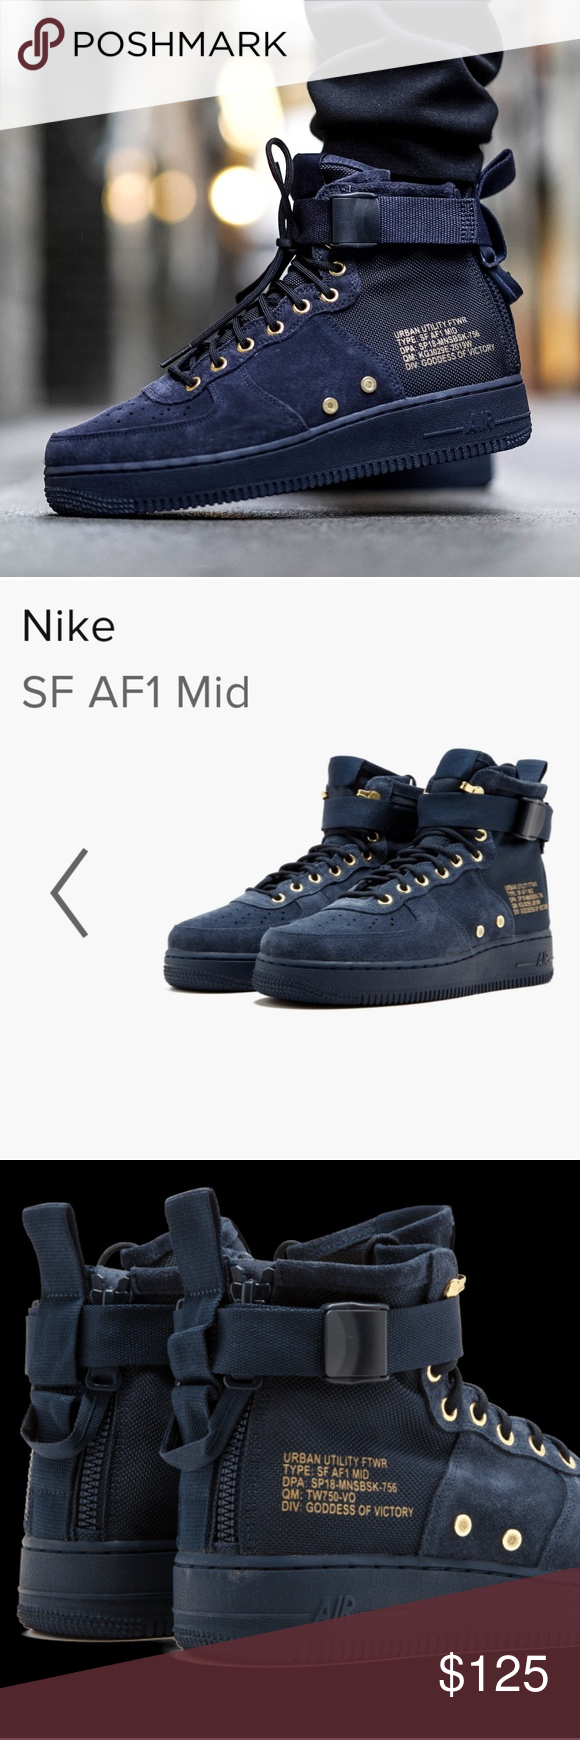 Nike mens SF Air Force 1 MID blue size 12